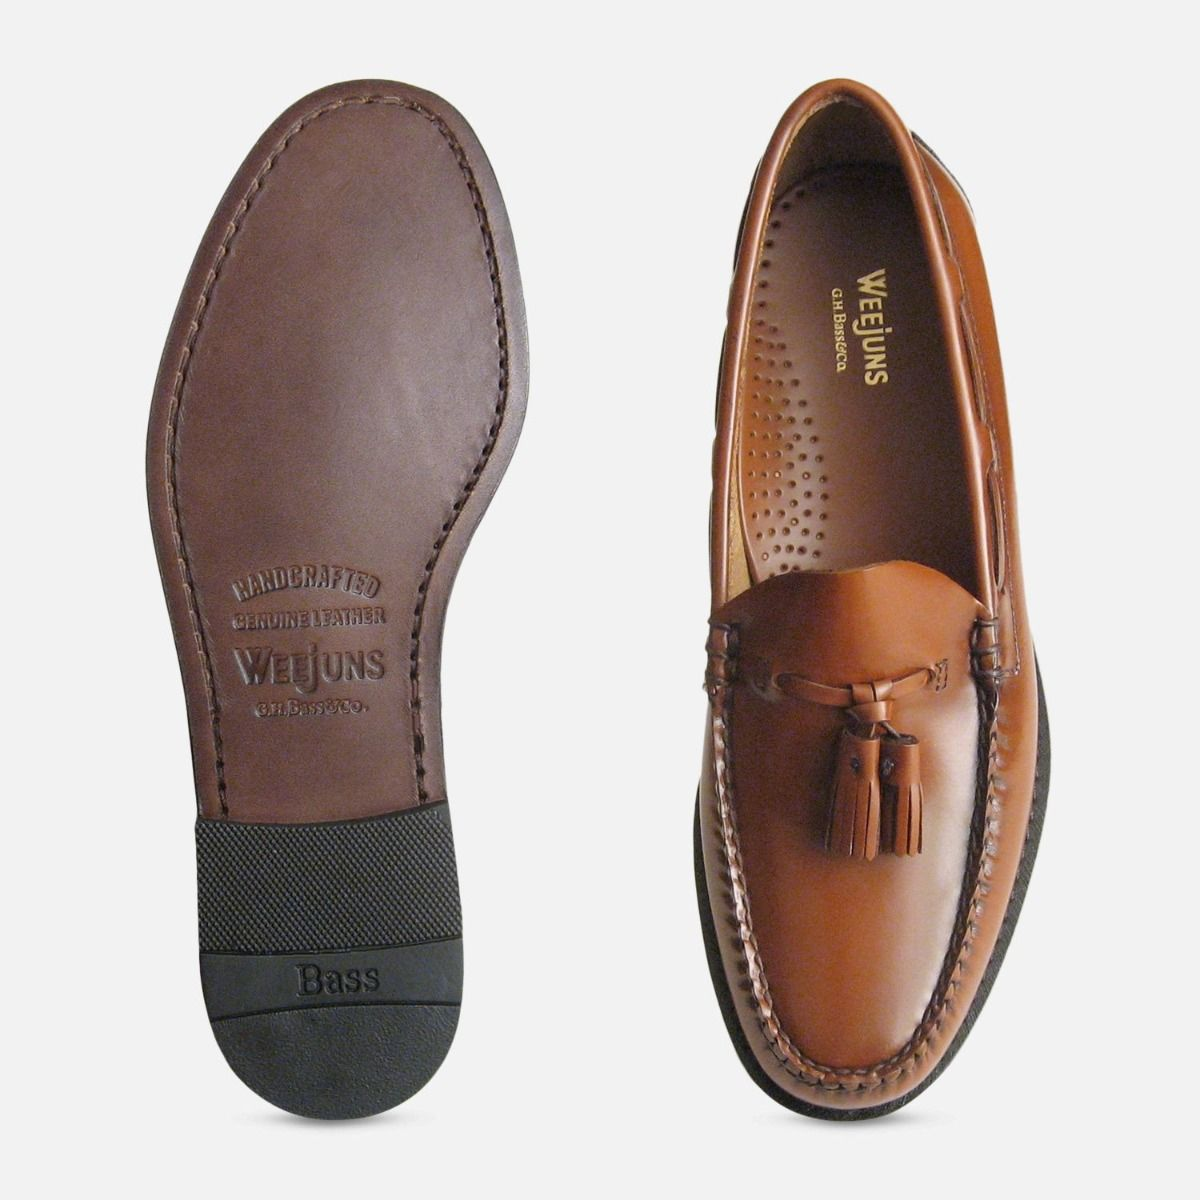 Honey Brown Polished Leather Formal Ivy League Tassel Loafers by Bass Weejuns